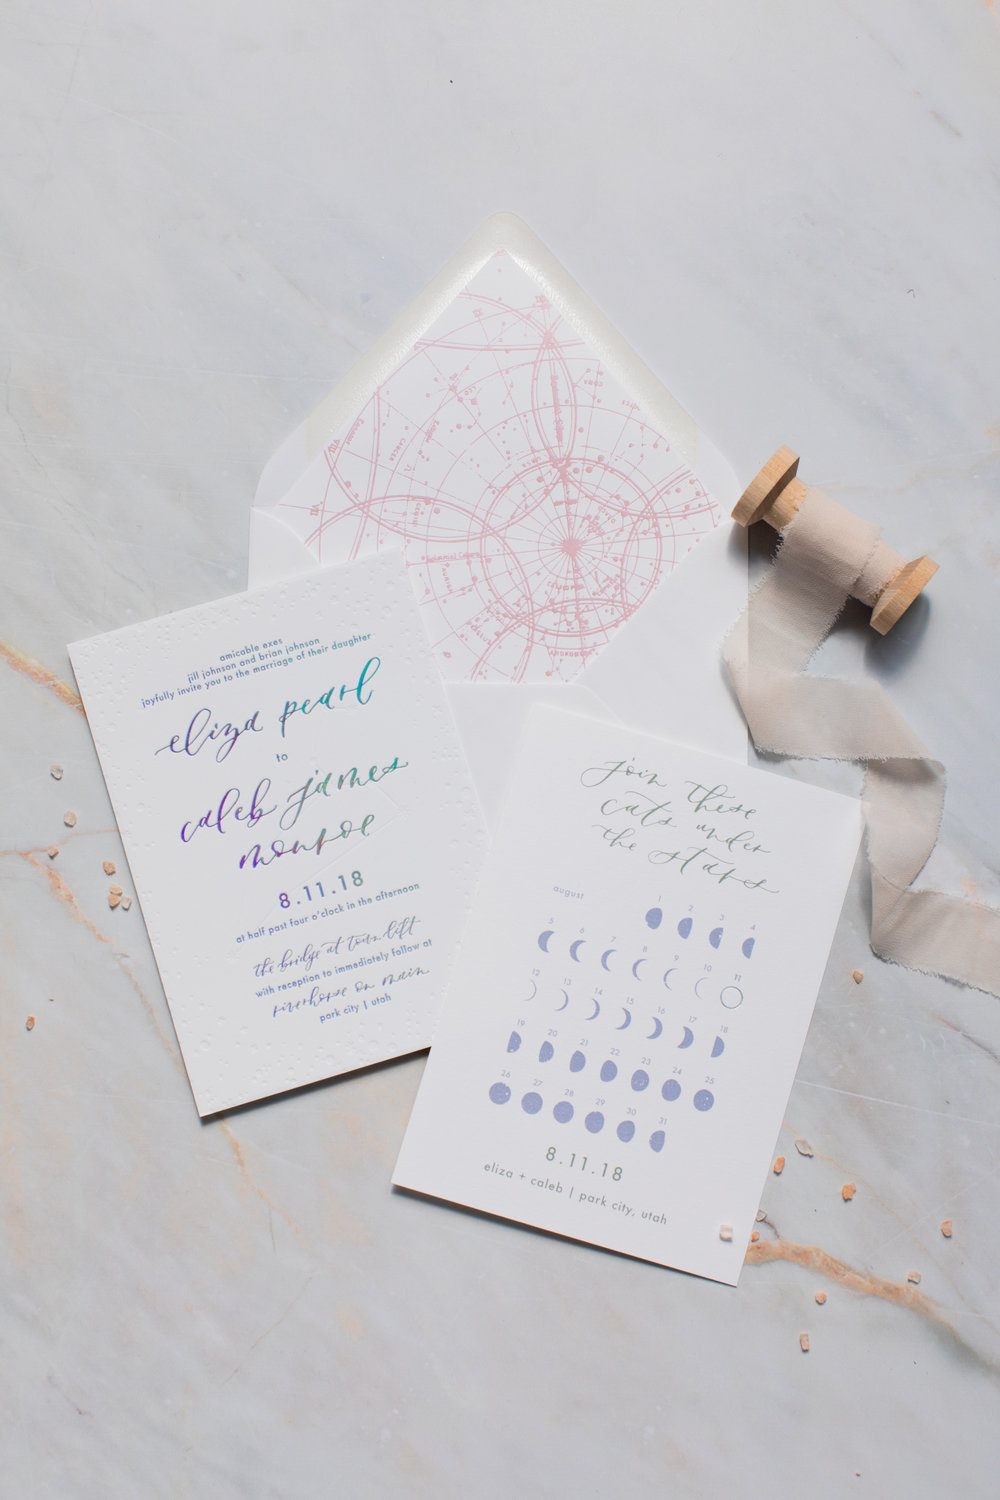 Celestial wedding invitations save the dates